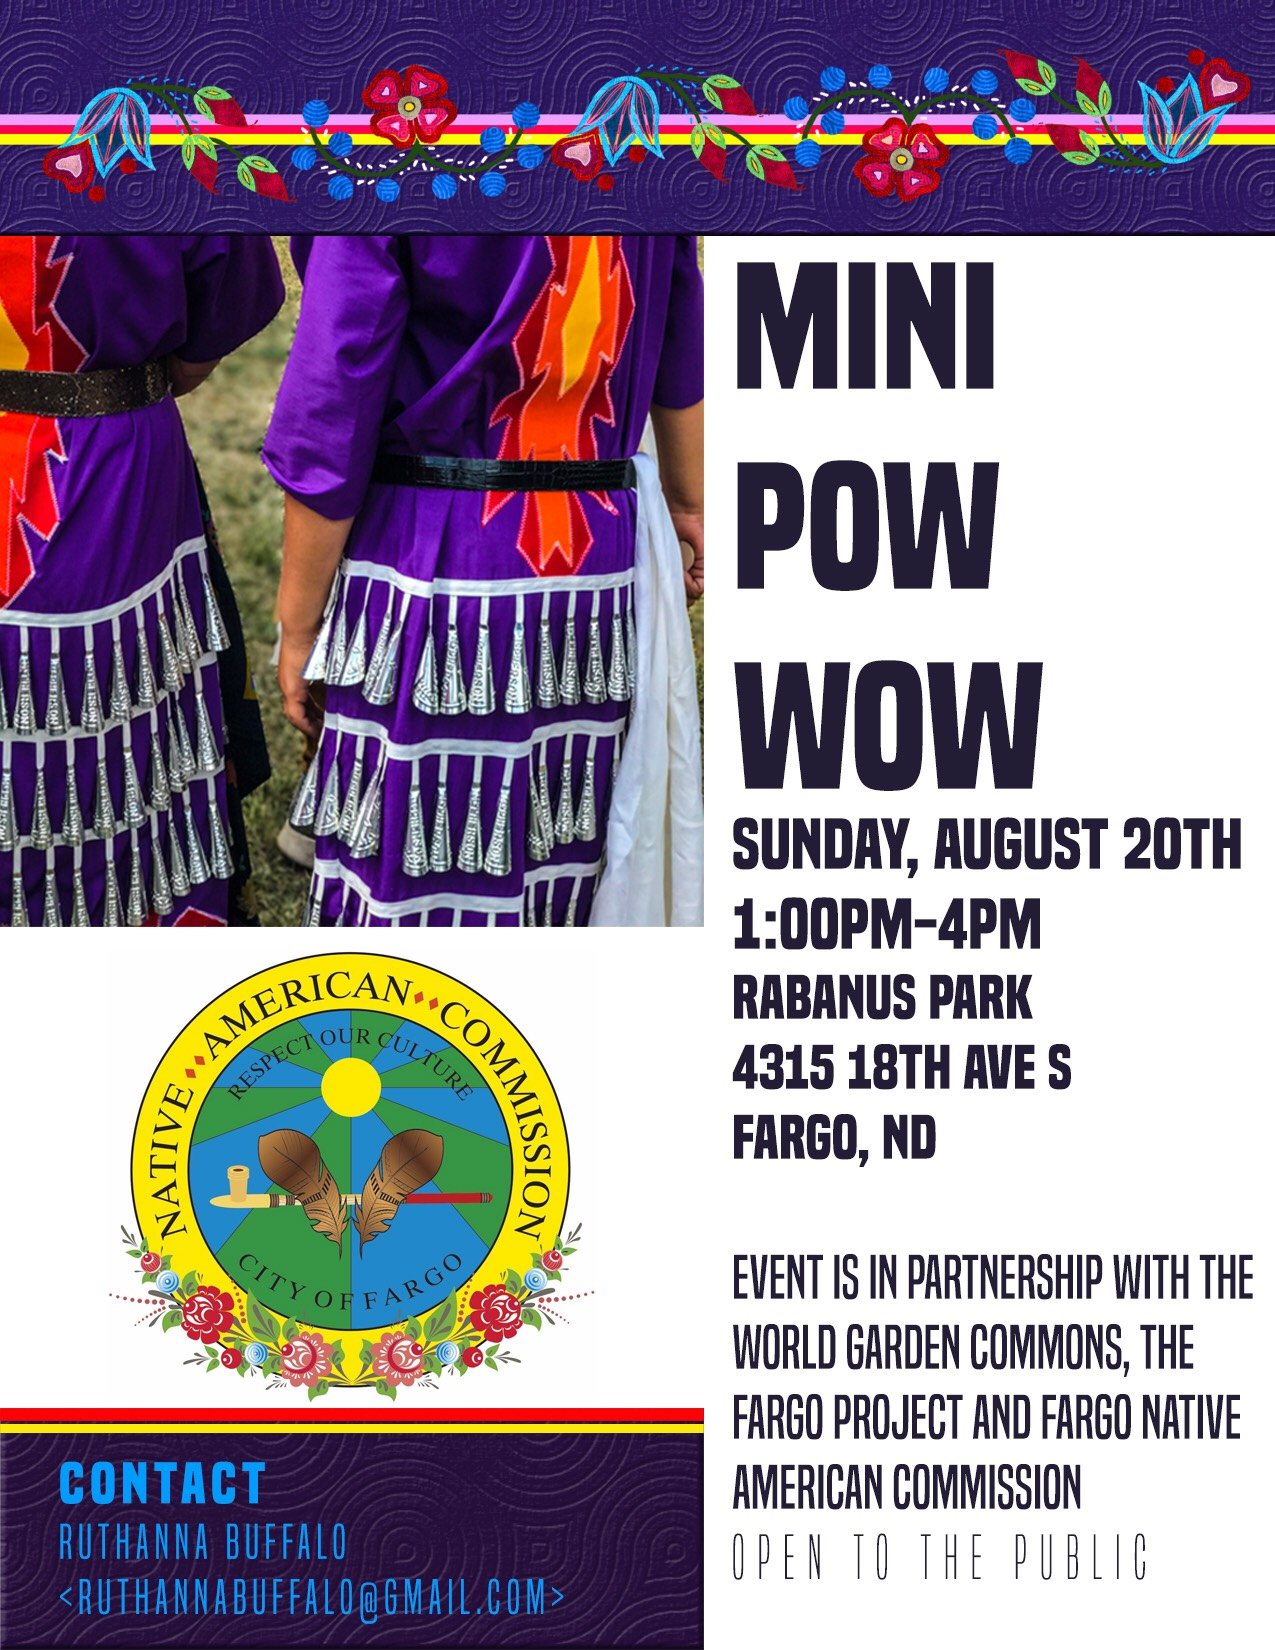 MINI POW WOW Sun. Aug. 20, 2017 Rabanus Park, Fargo